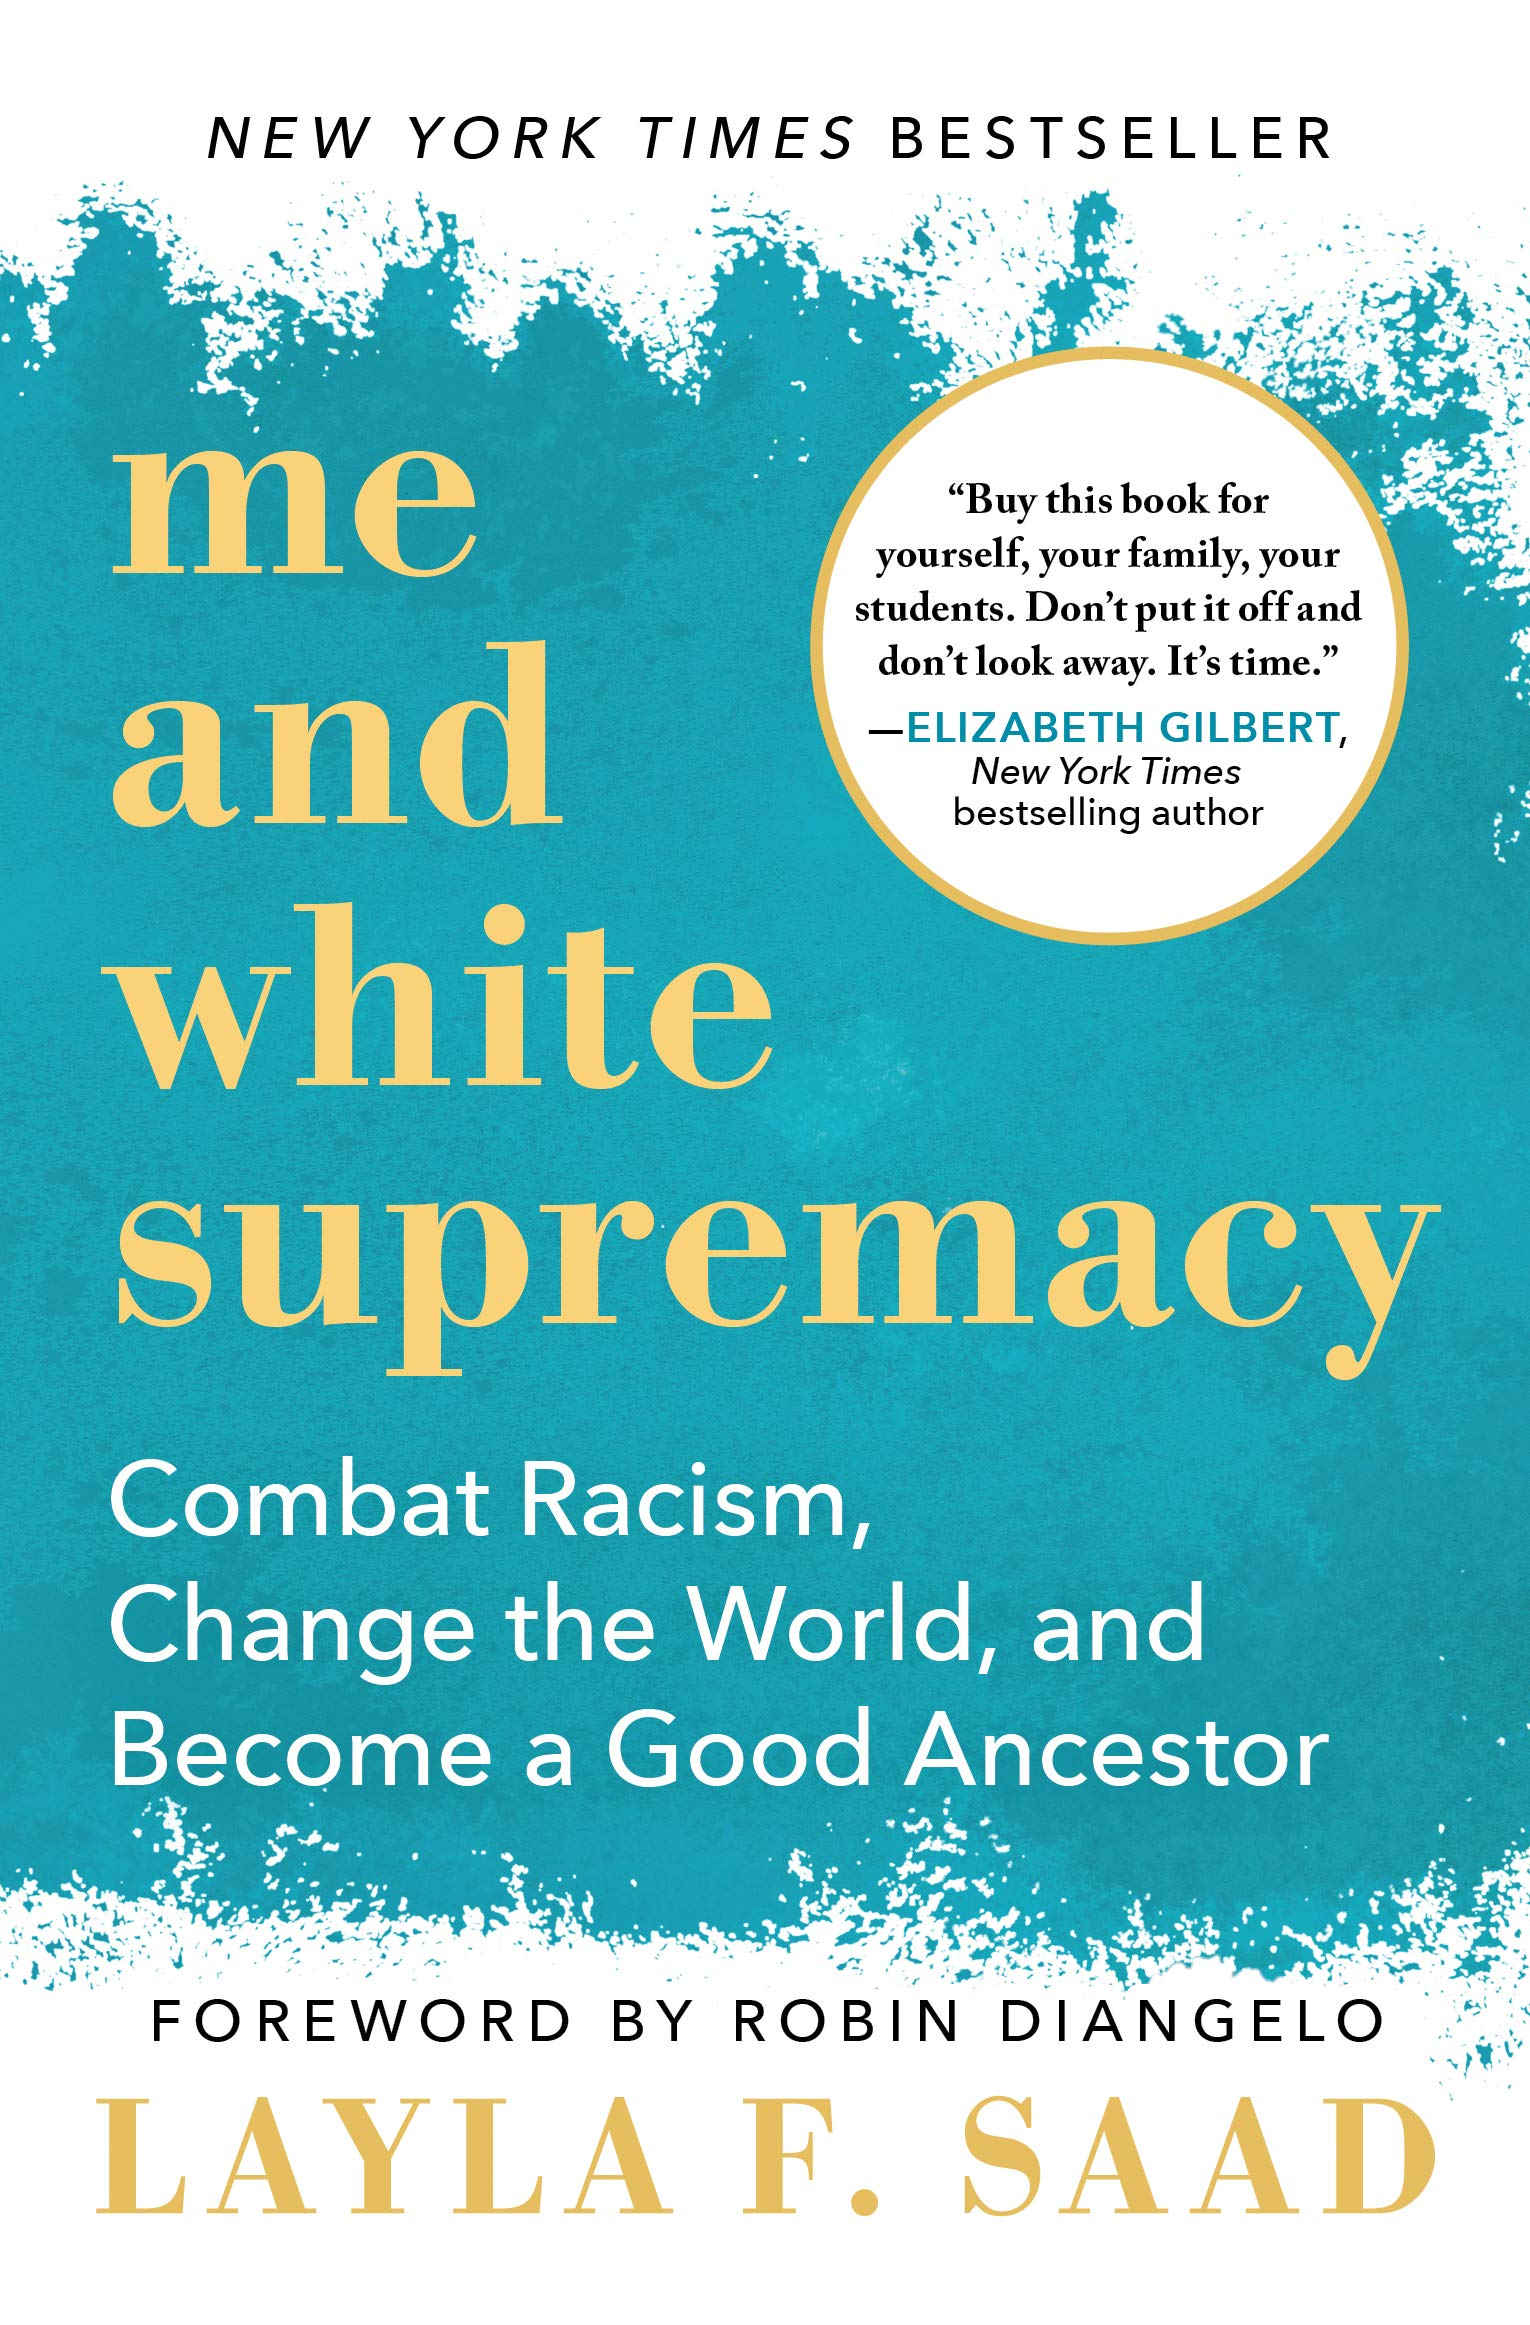 book cover for Me and White Supremacy by Layla Saad